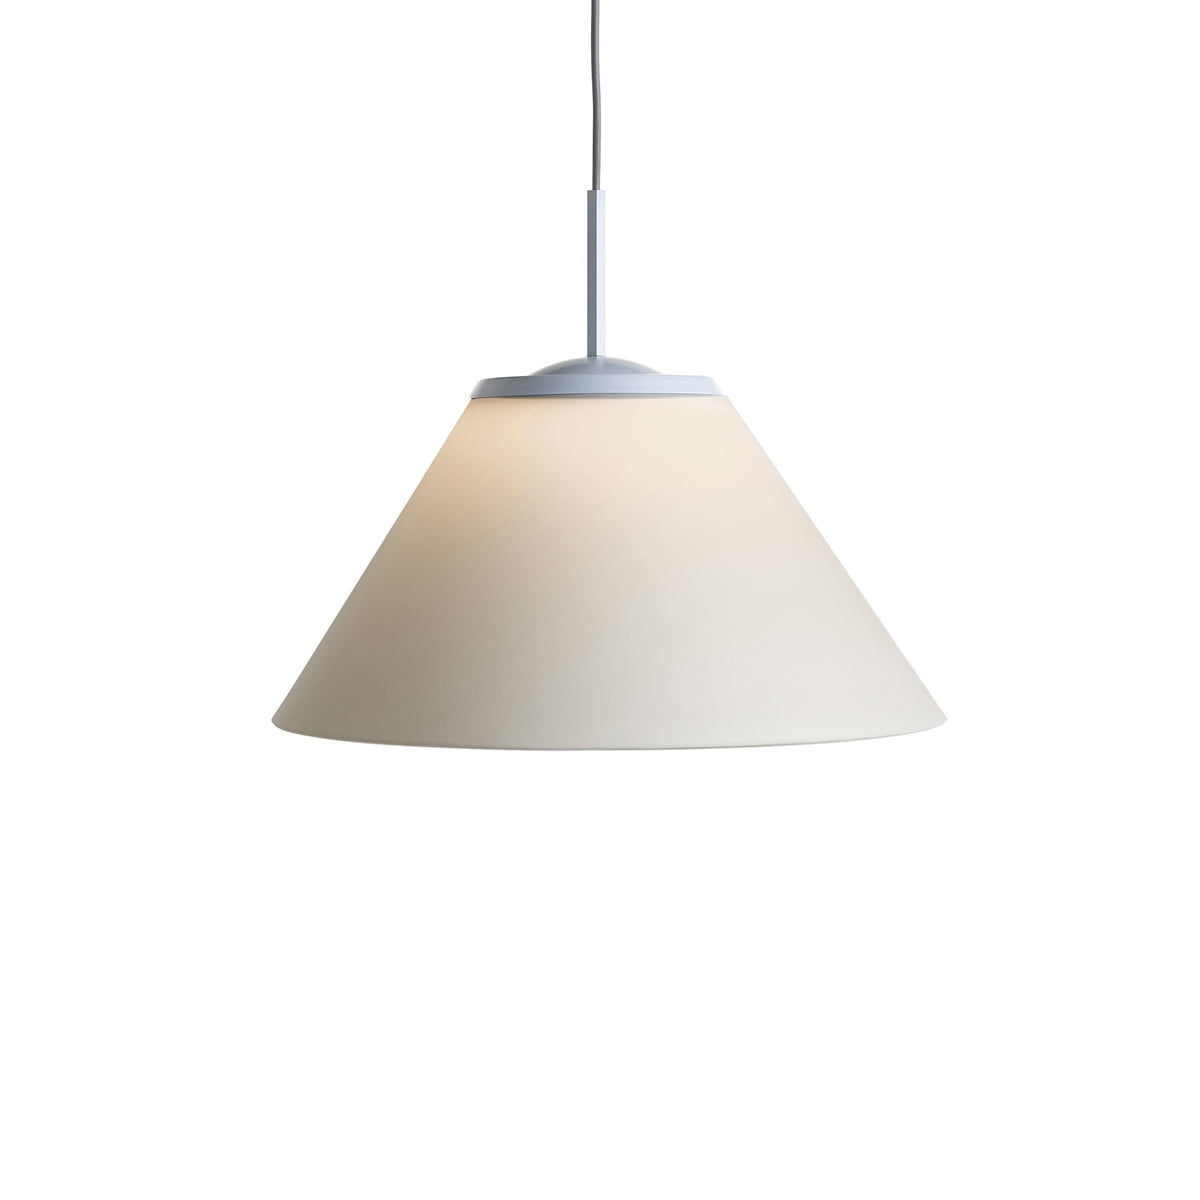 Cappuccina Pendant Lamp By Luceplan In Cream